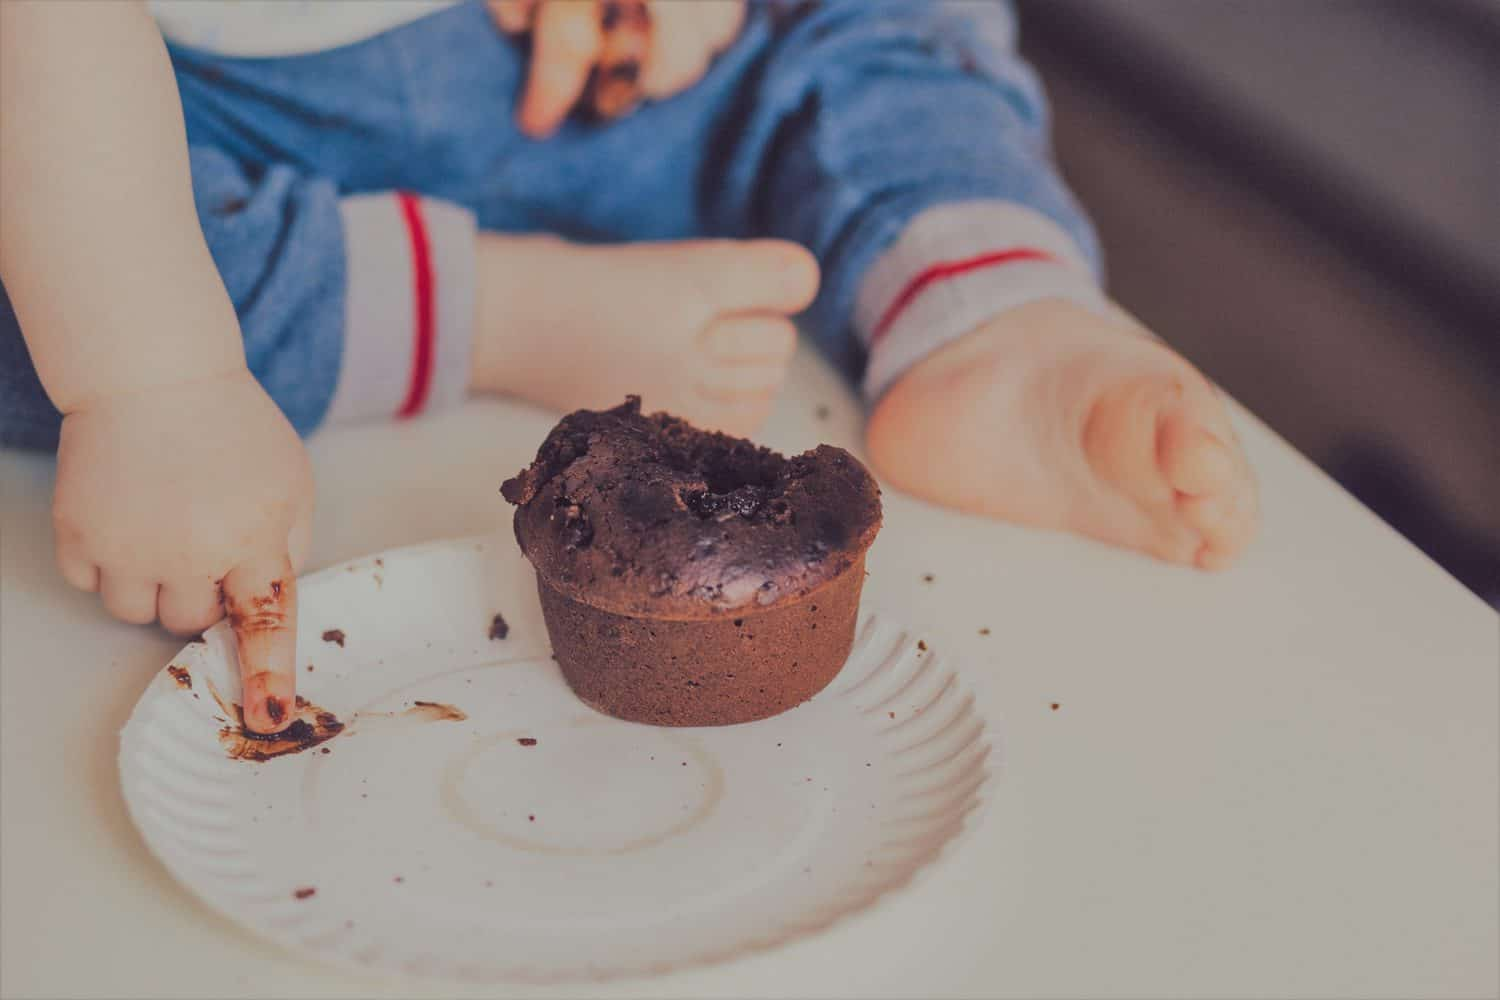 Baby trying to eat chocolate cupcake